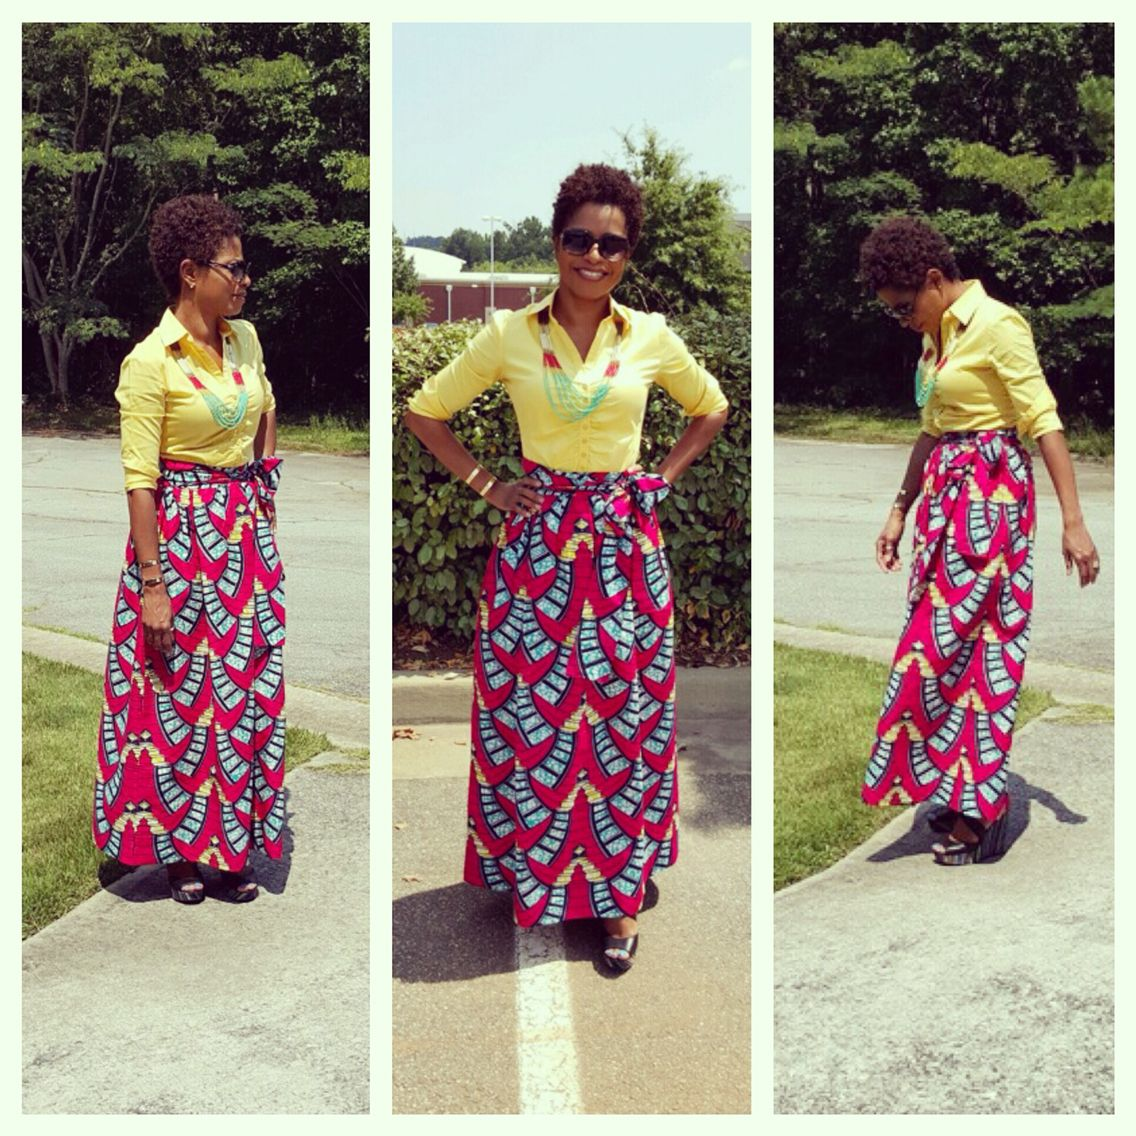 I ❤️ my Chic African Print Maxi Skirt (Red/Turquoise Ladder) Diyanu.com